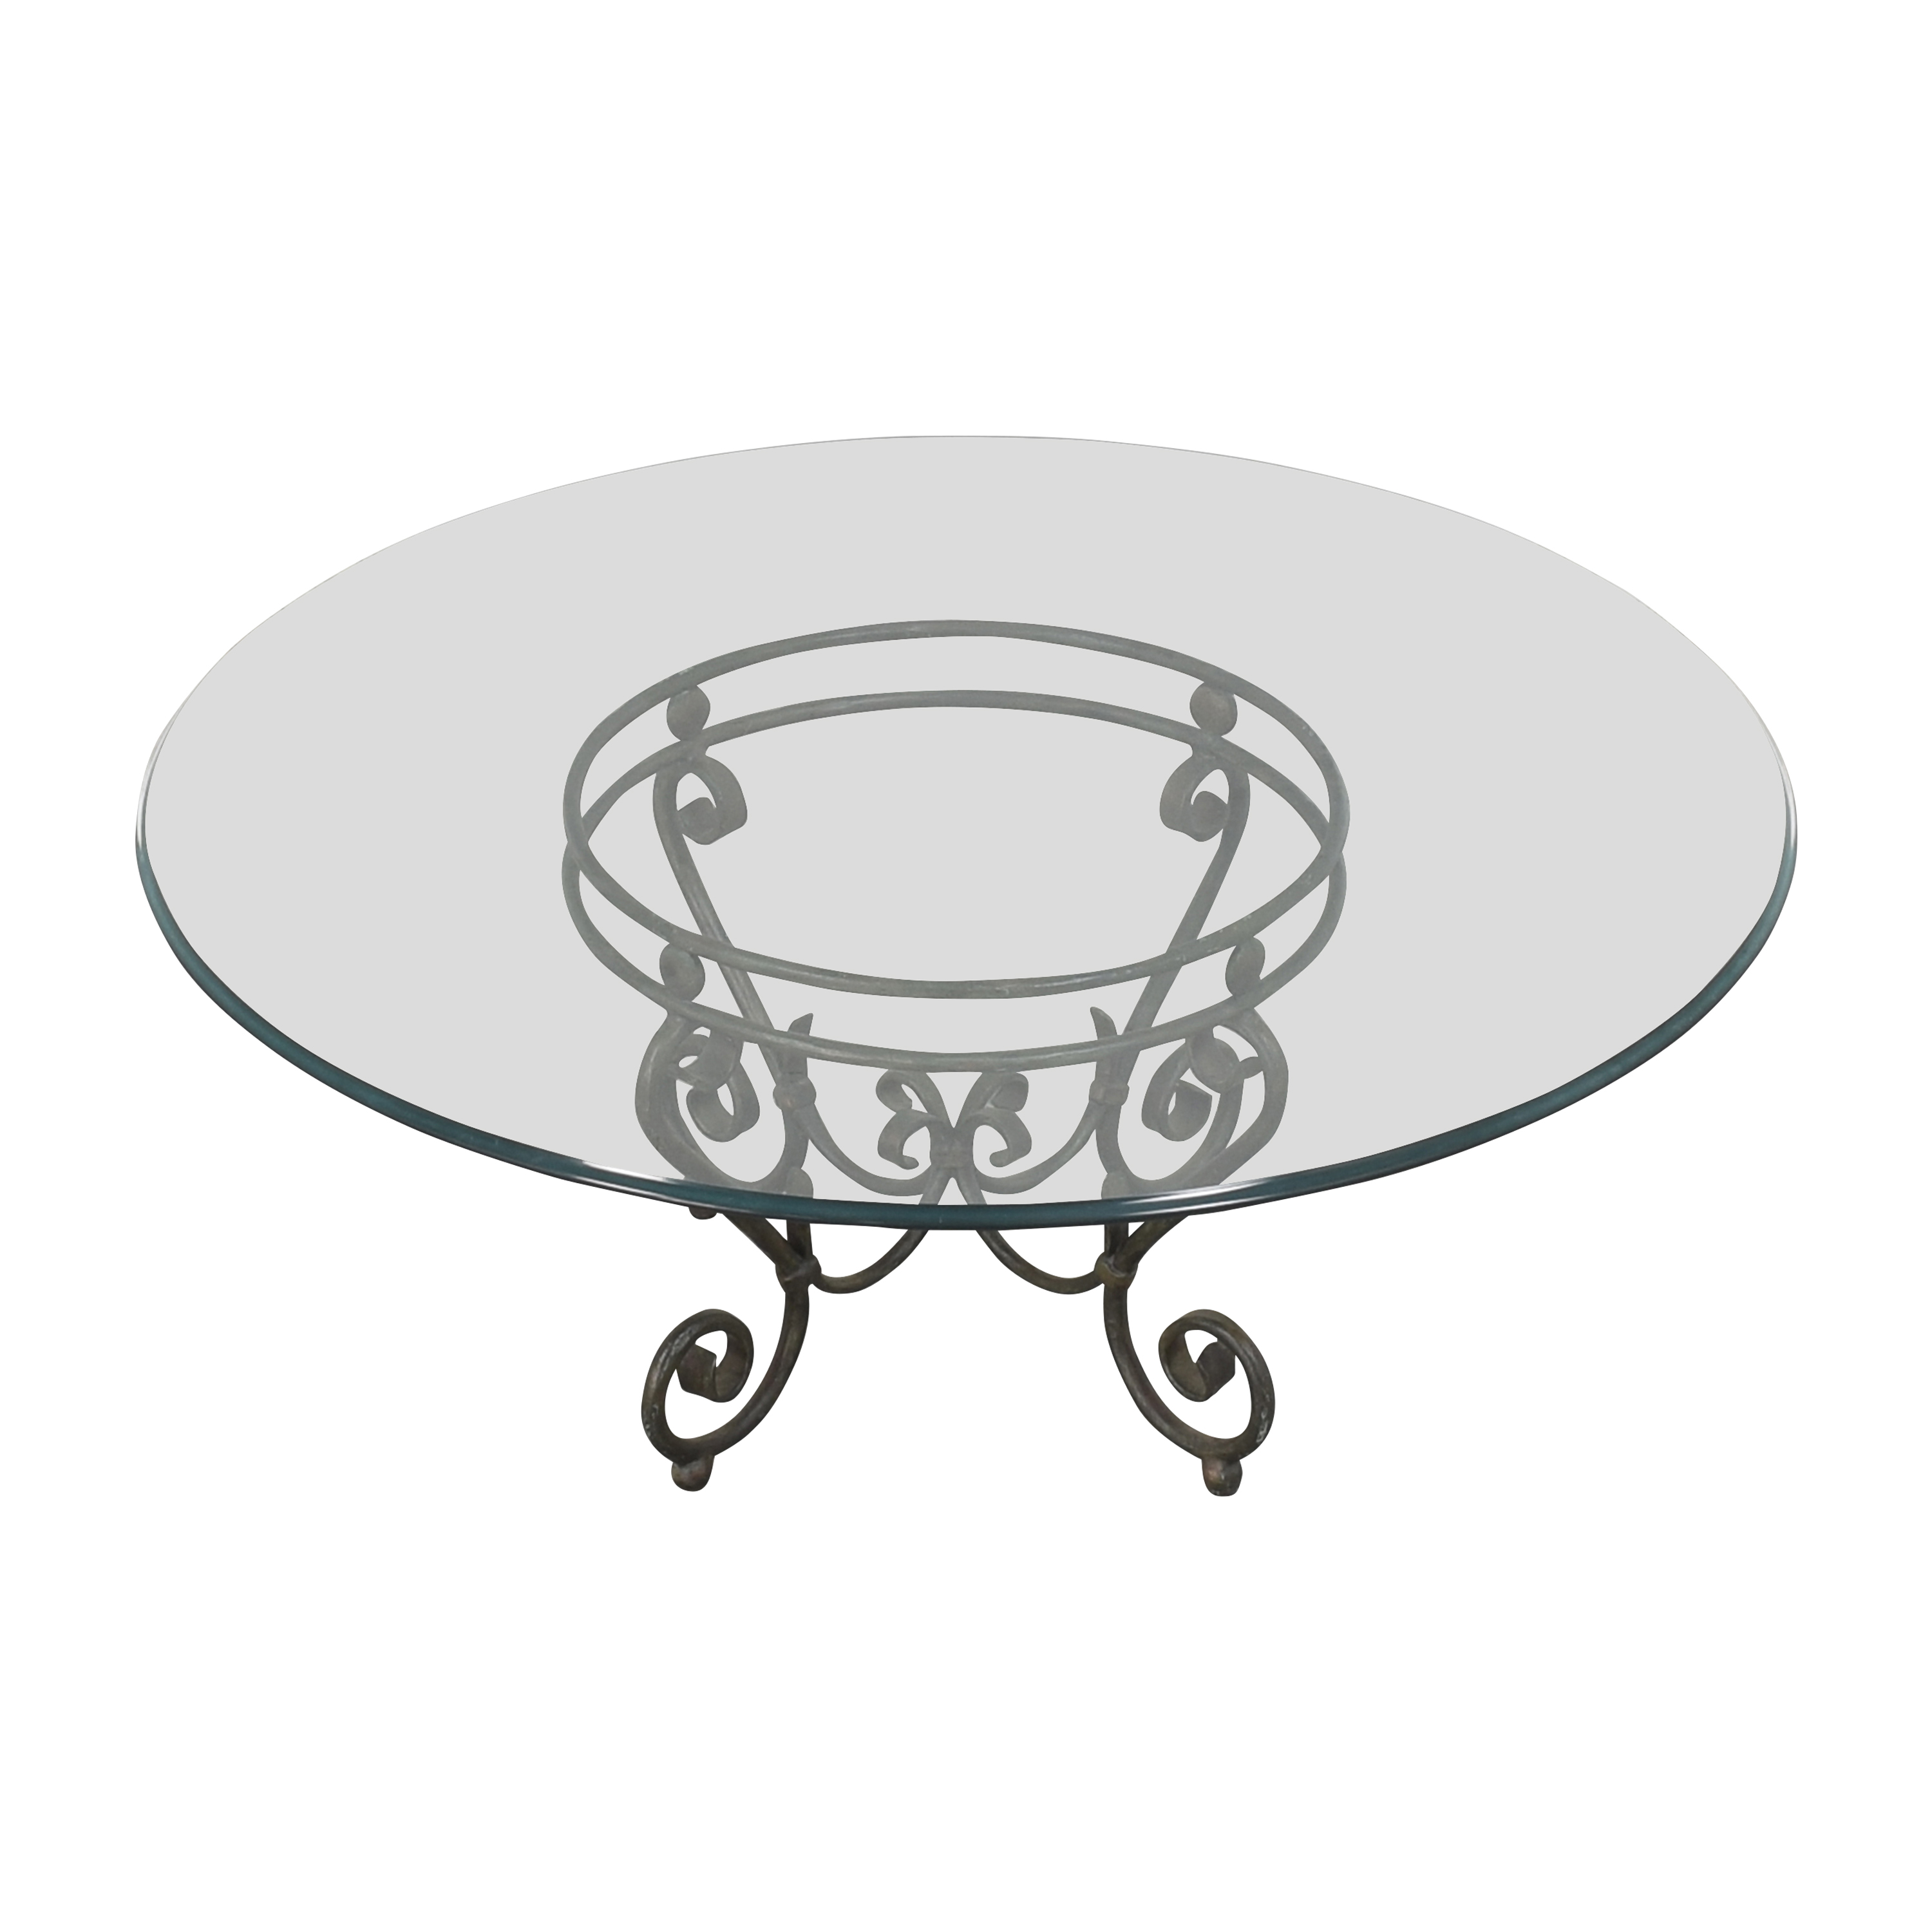 Transparent Coffee Table with Decorative Base coupon